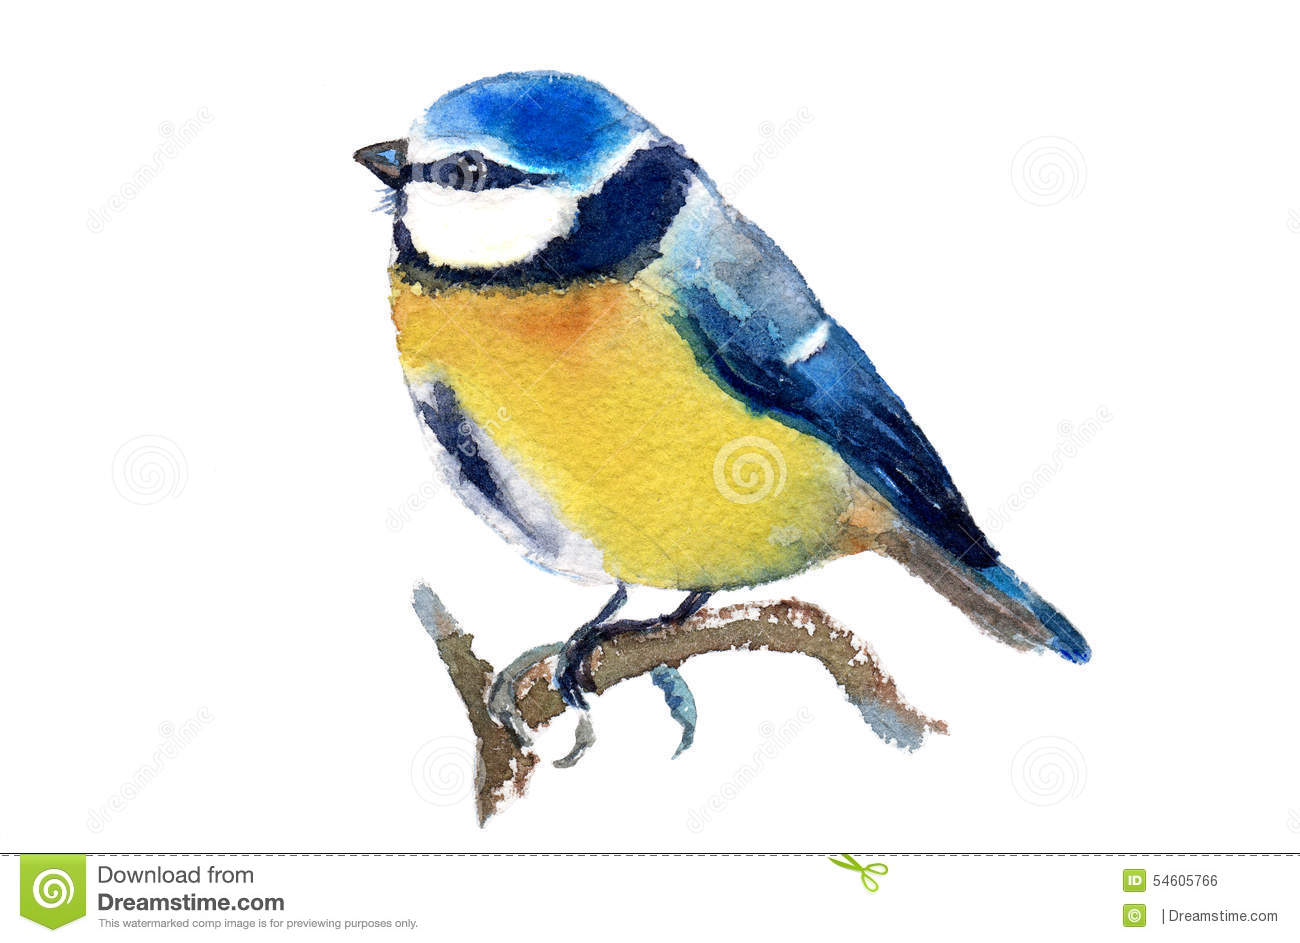 Blue Tit clipart #13, Download drawings